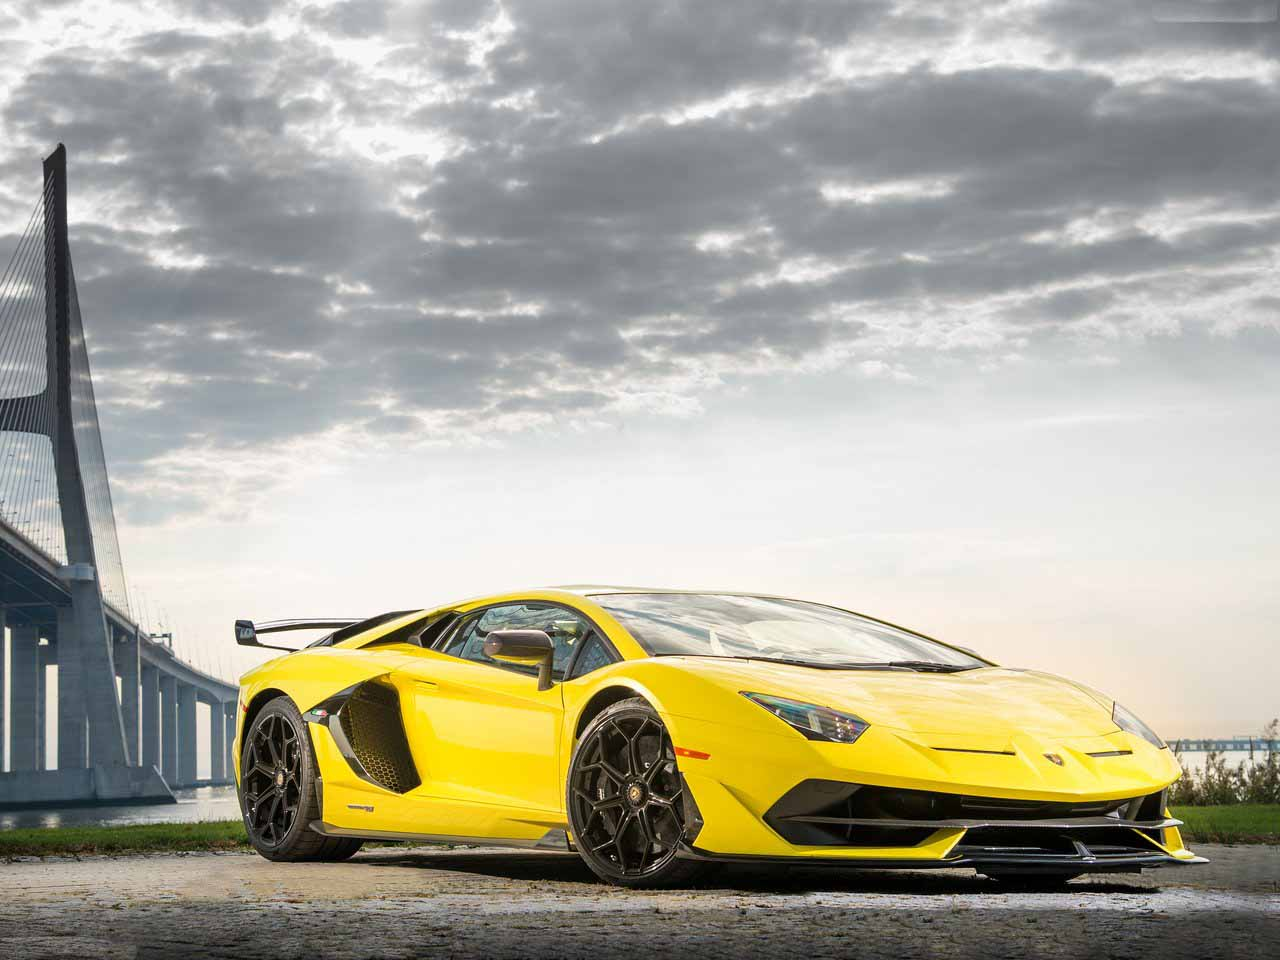 Lamborghini Aventador Svj Goes On Sale In India Priced At Inr 8 5 Crore